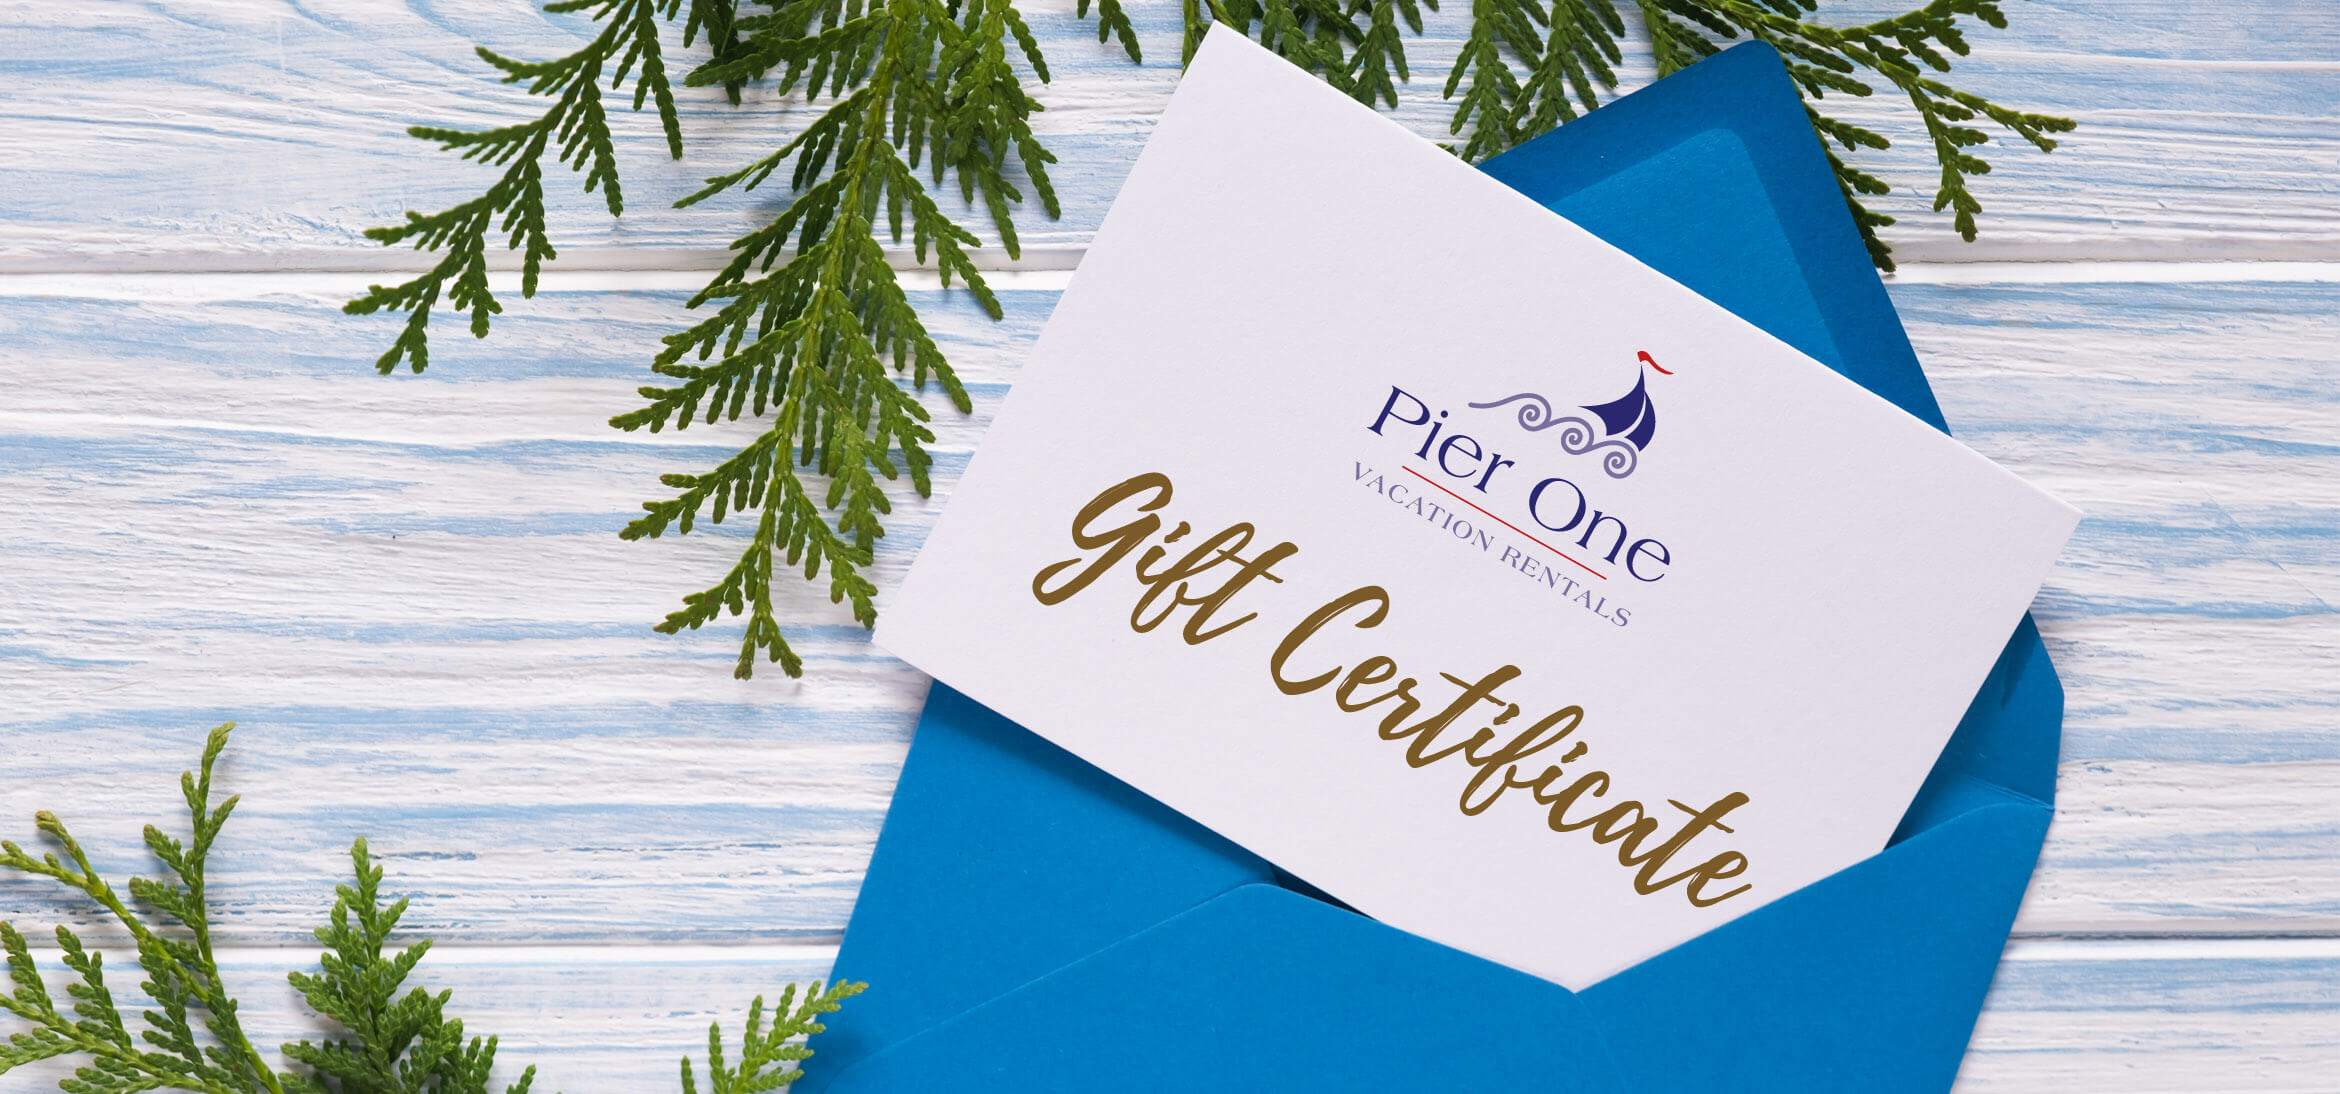 Pier One Gift Certificate